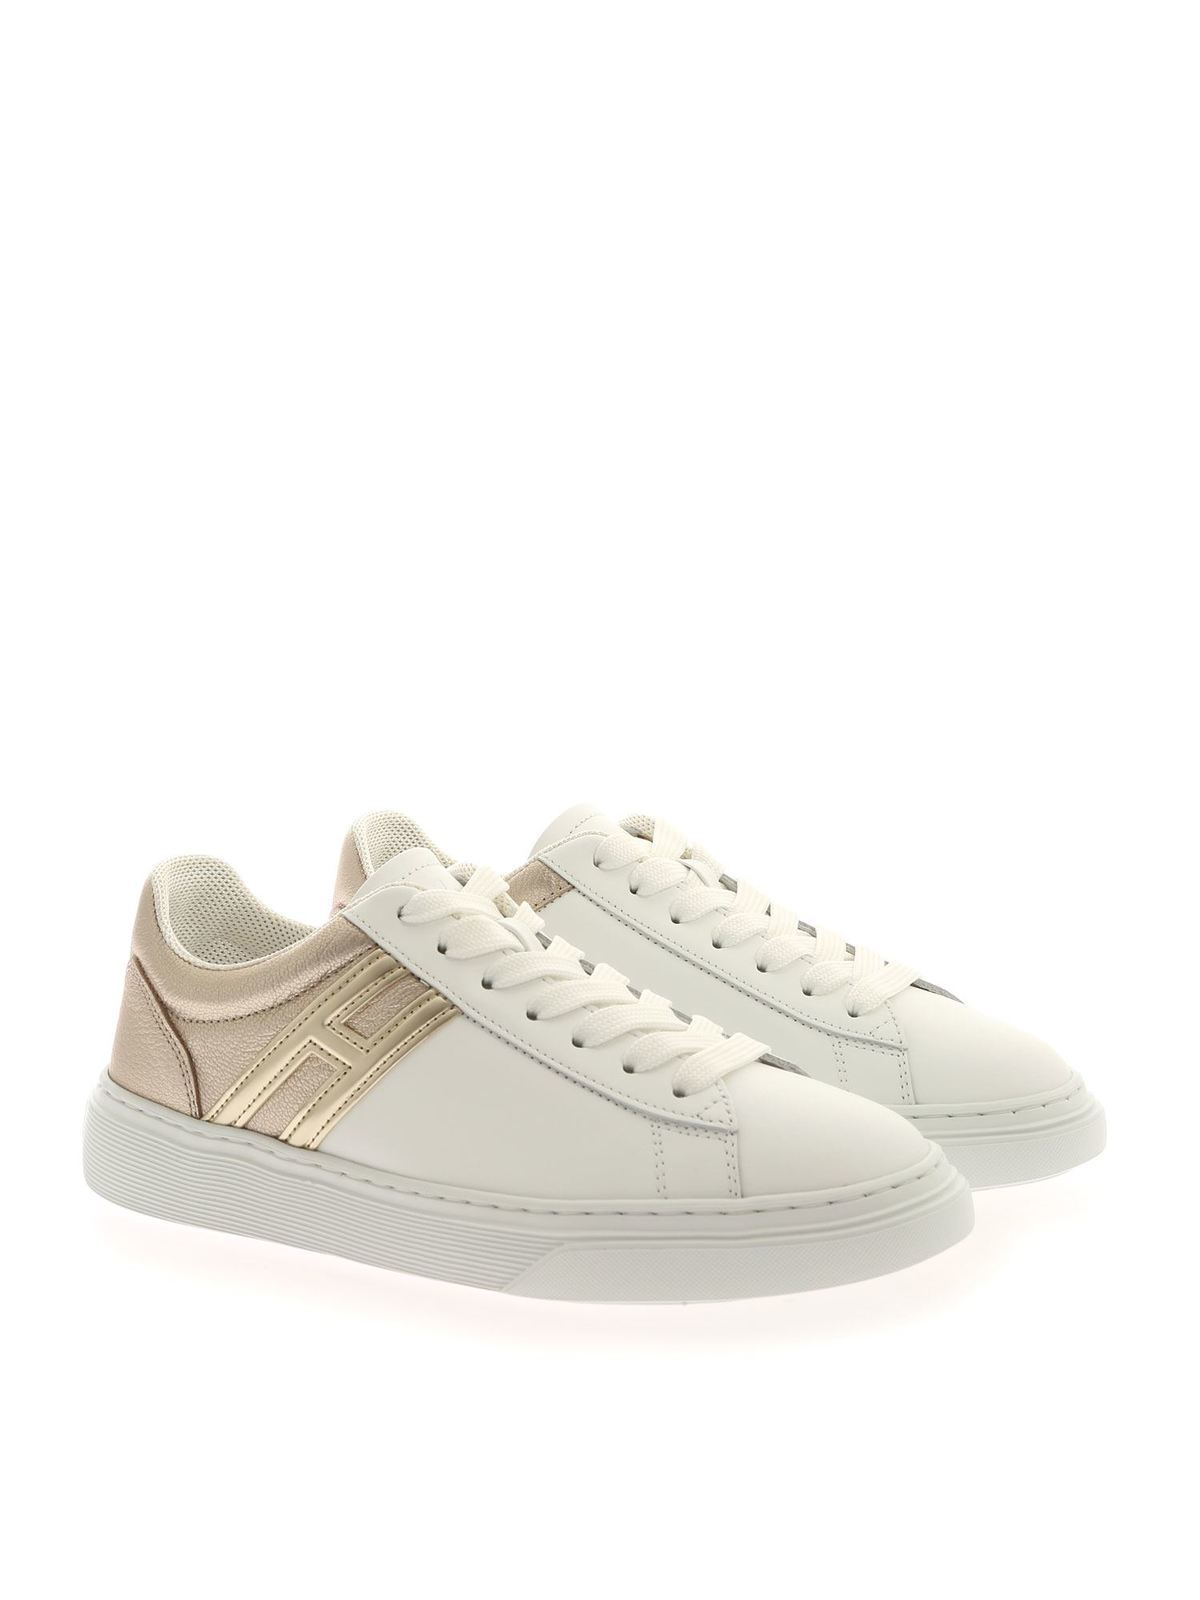 Hogan - H365 sneakers in white and platinum color - trainers ...